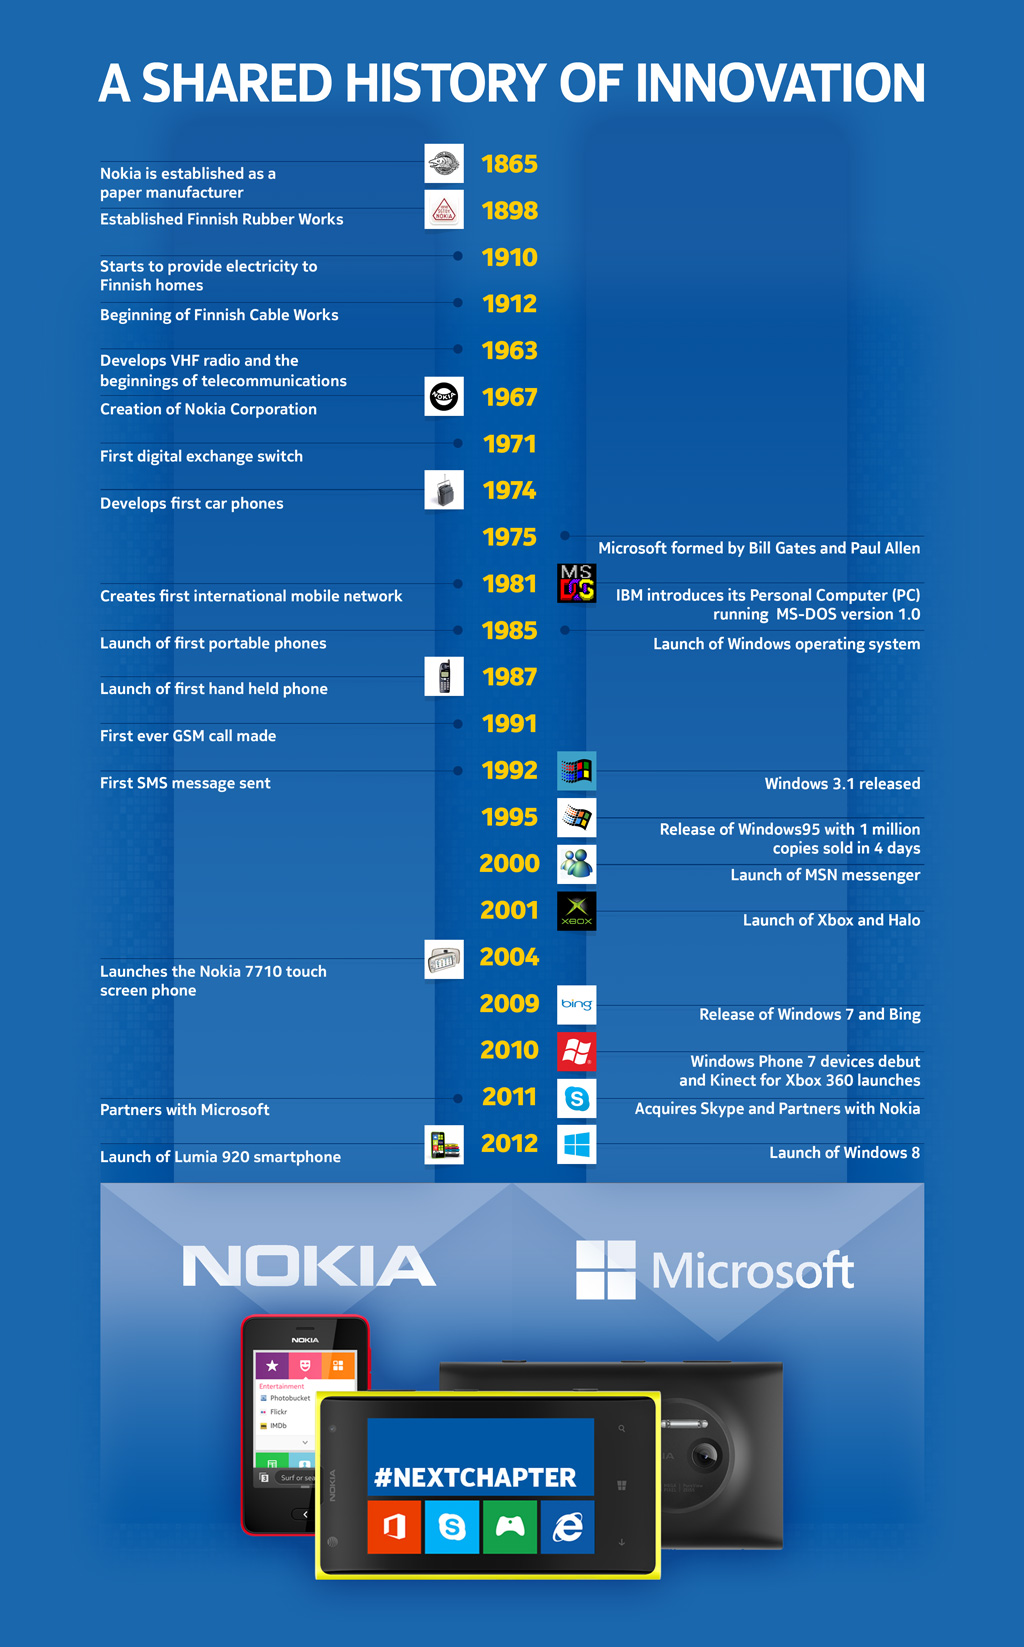 Infographic: Continuing Reinvention at Nokia and Microsoft ...